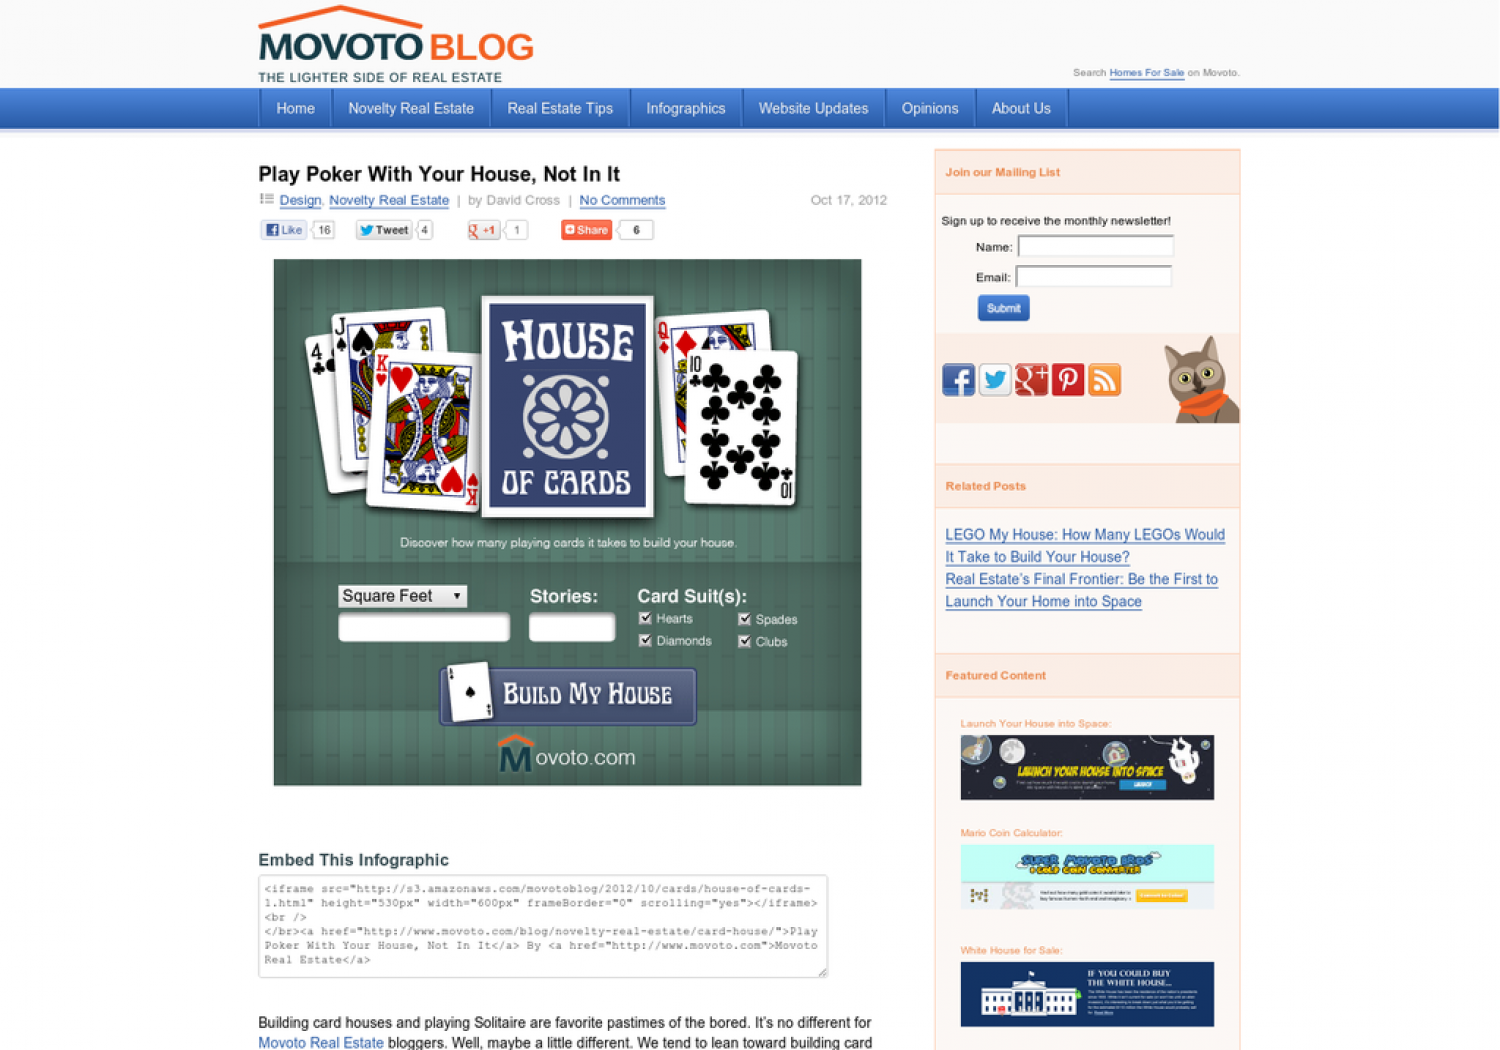 How Many Decks Would It Take to Build YOUR House Into Cards Infographic